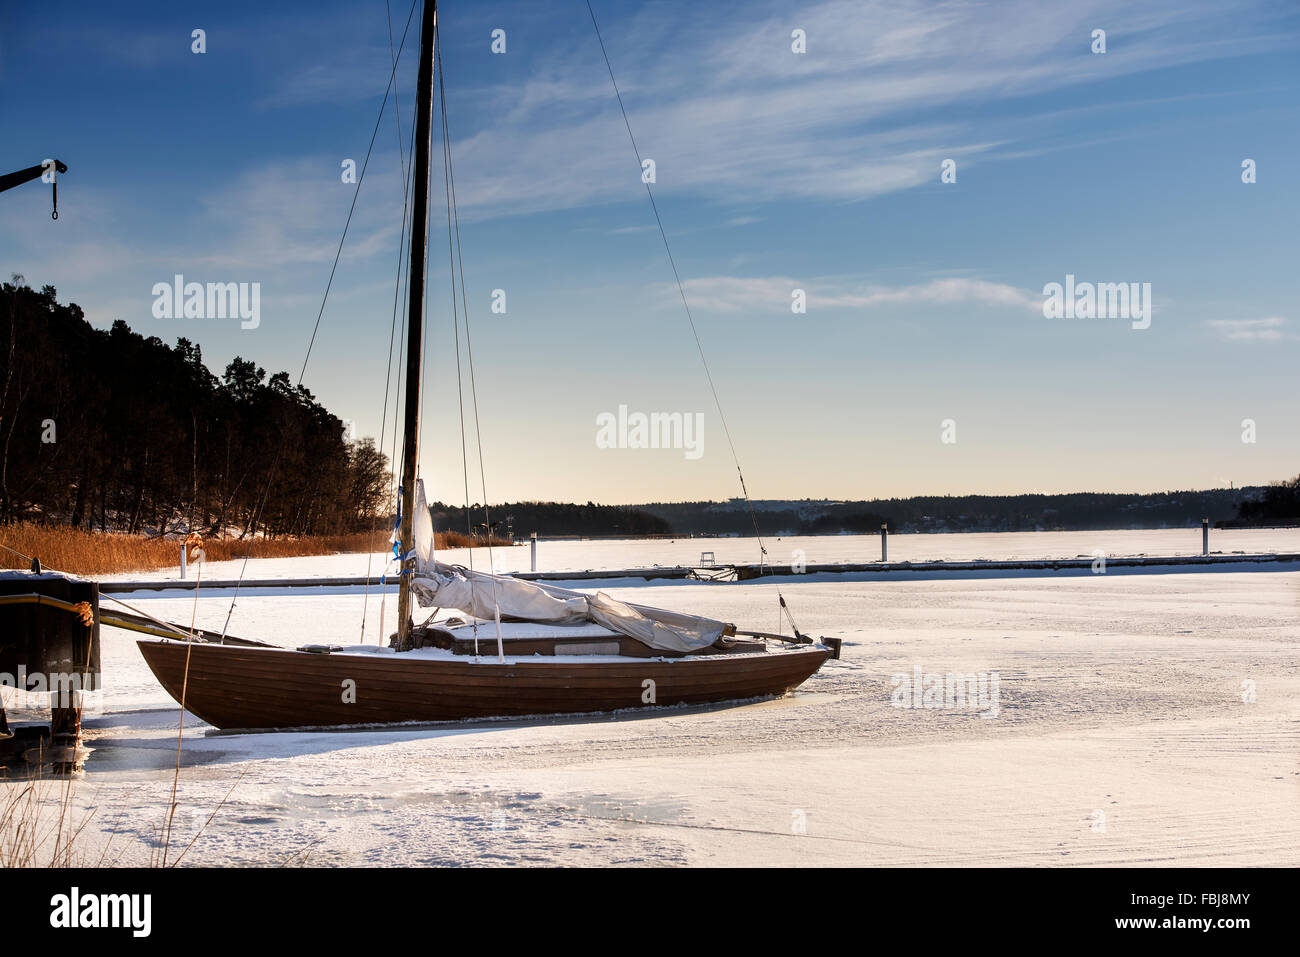 Frozen sailing boat - Stock Image